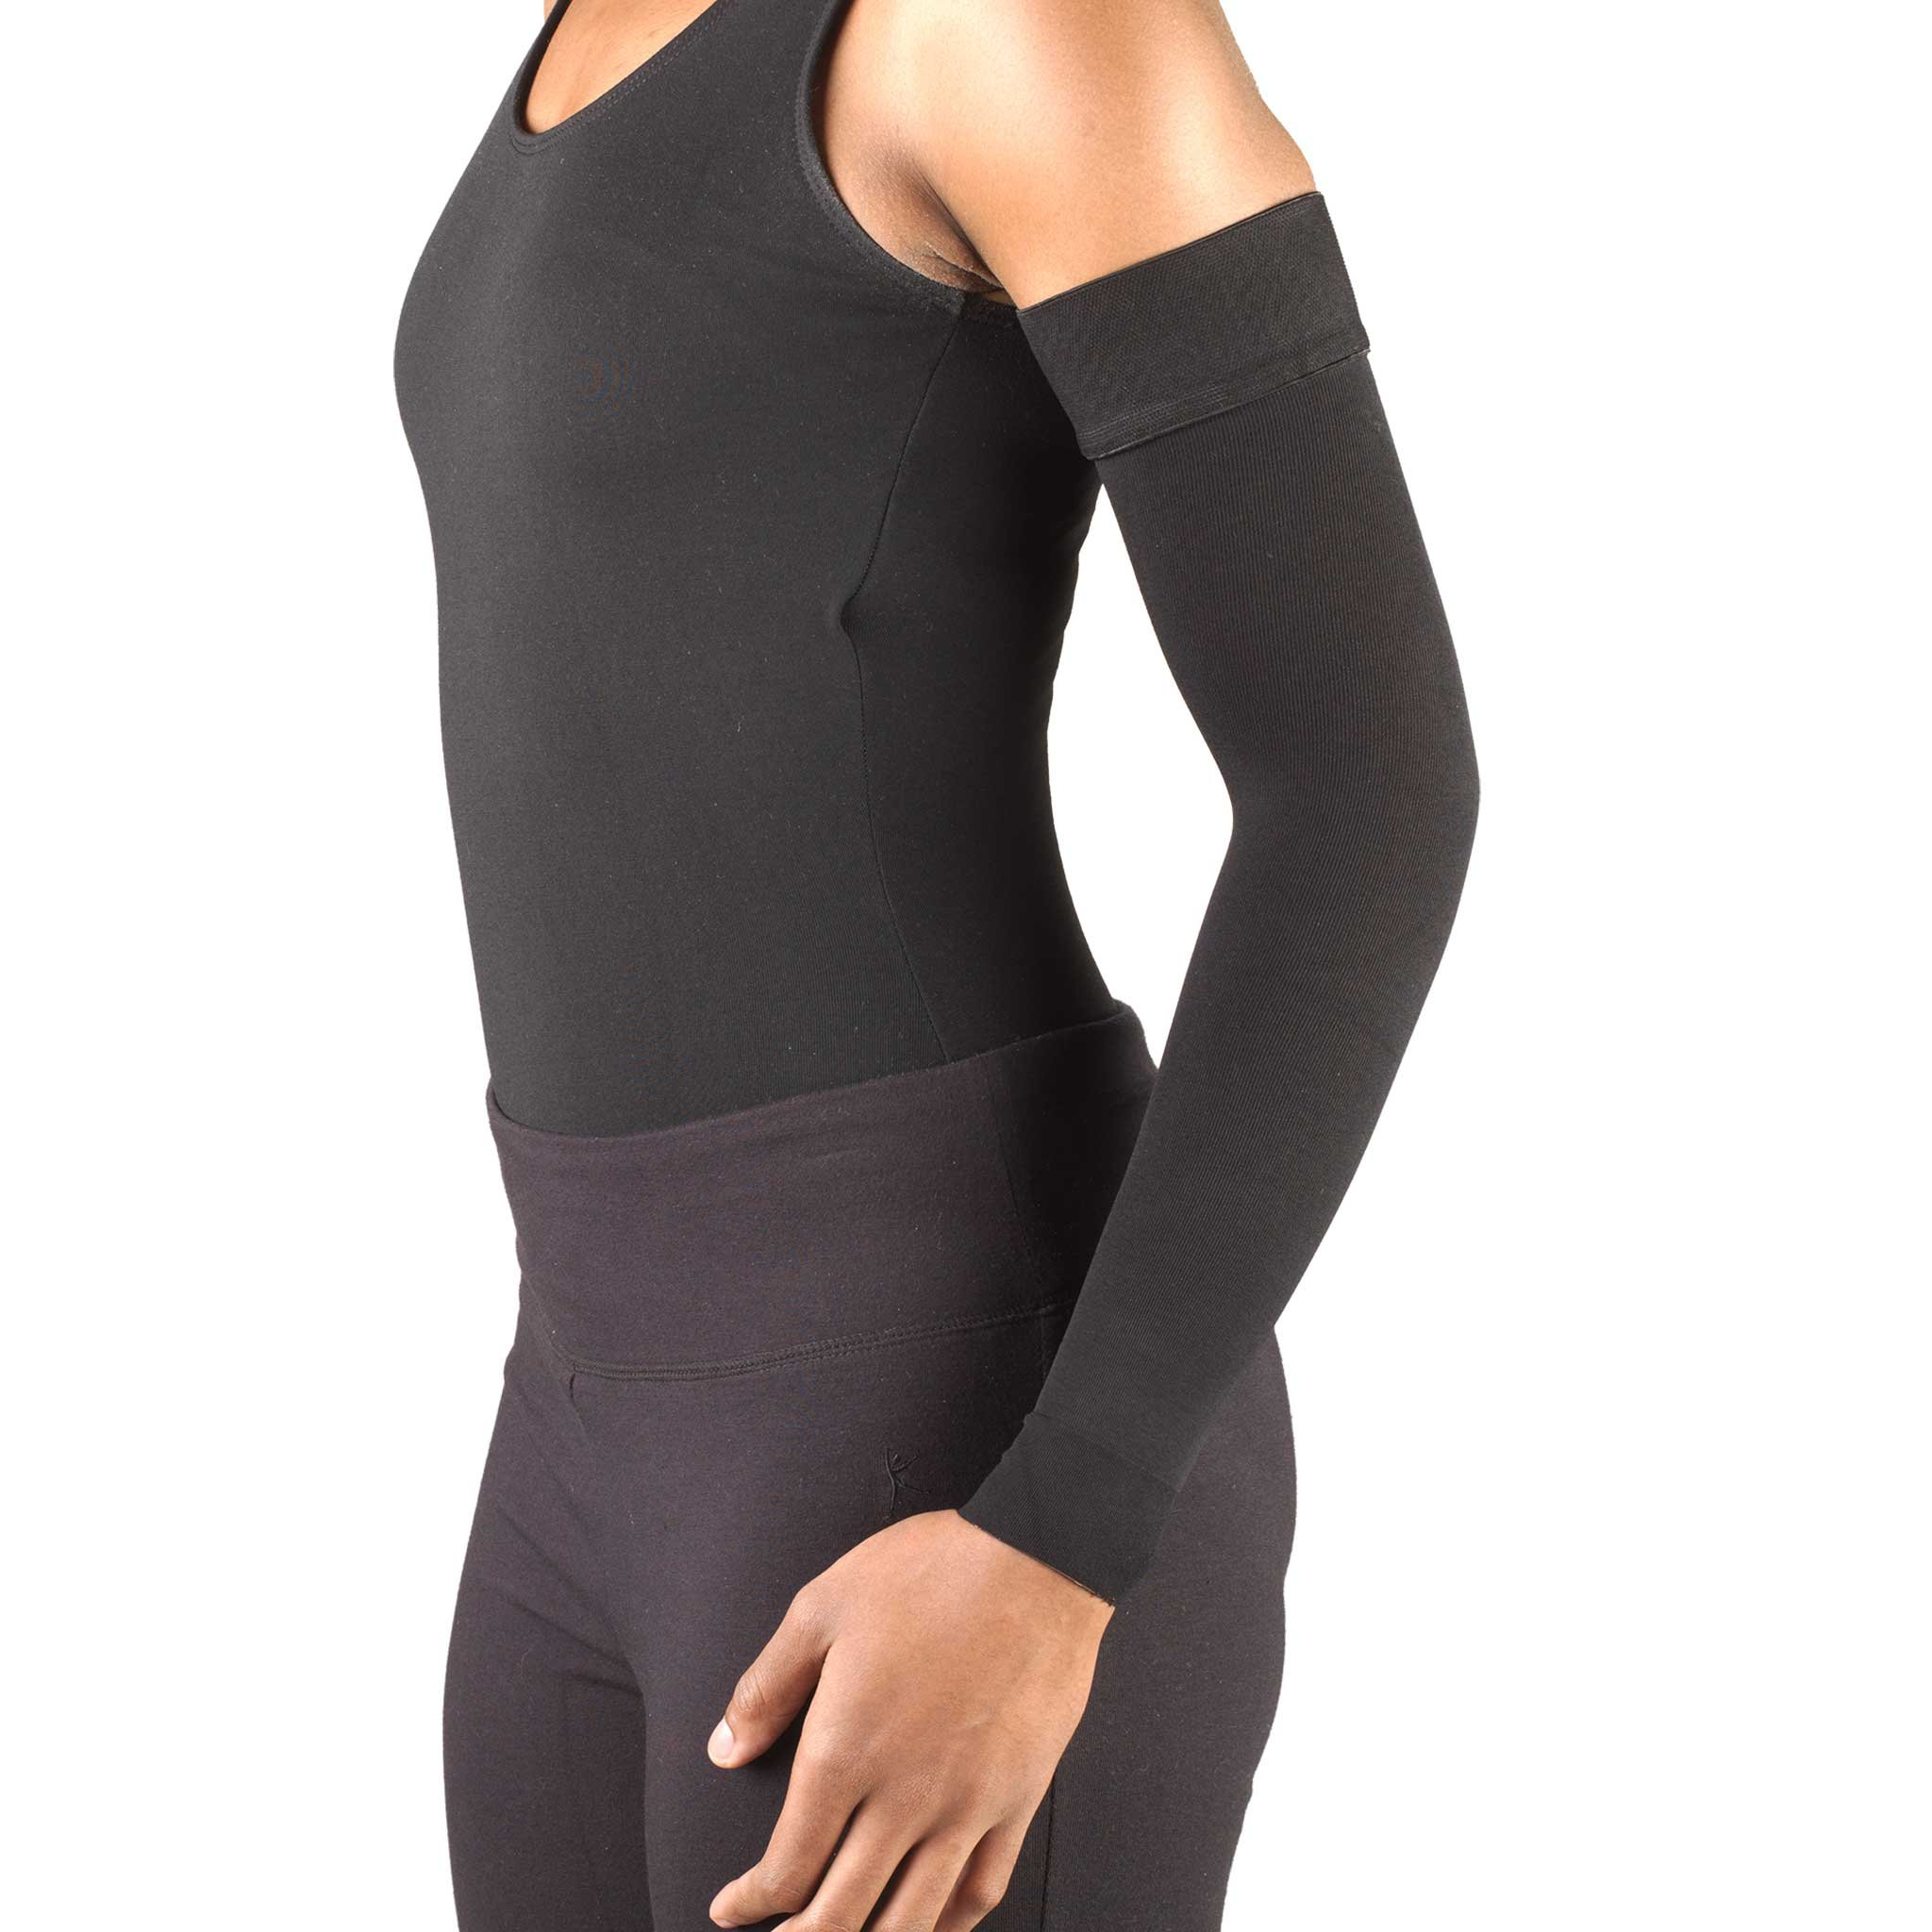 Truform Lymphedema Arm Sleeve, 20-30 mmHg Compression, Women's Post Surgical Garment, Mastectomy Swelling Management, Soft Microfiber, Medical Grade Support, Silicone Dot Top, Black, Small